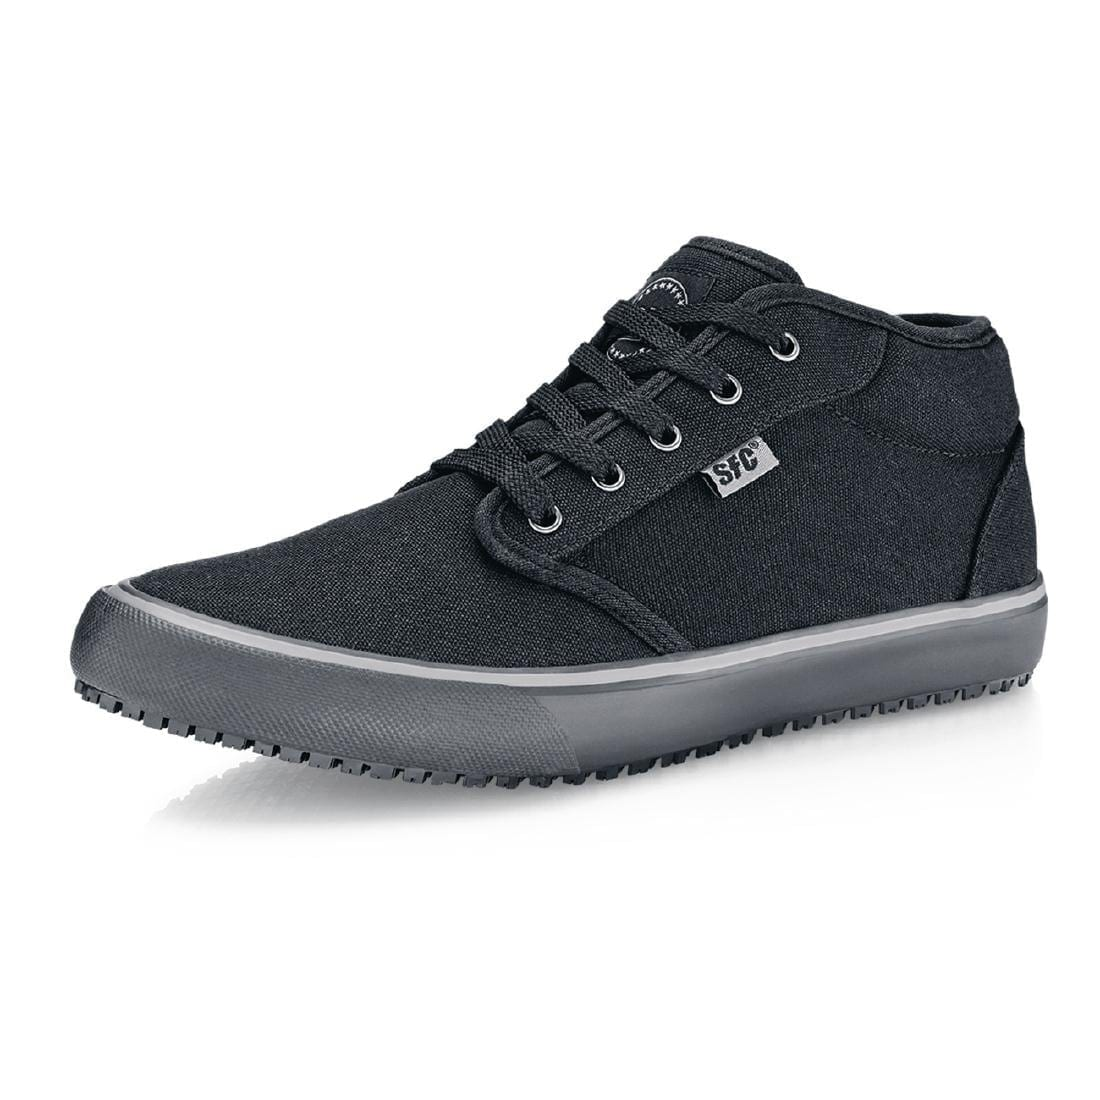 Shoes For Crews Coated Canvas Lace up Boot - Size 44-0